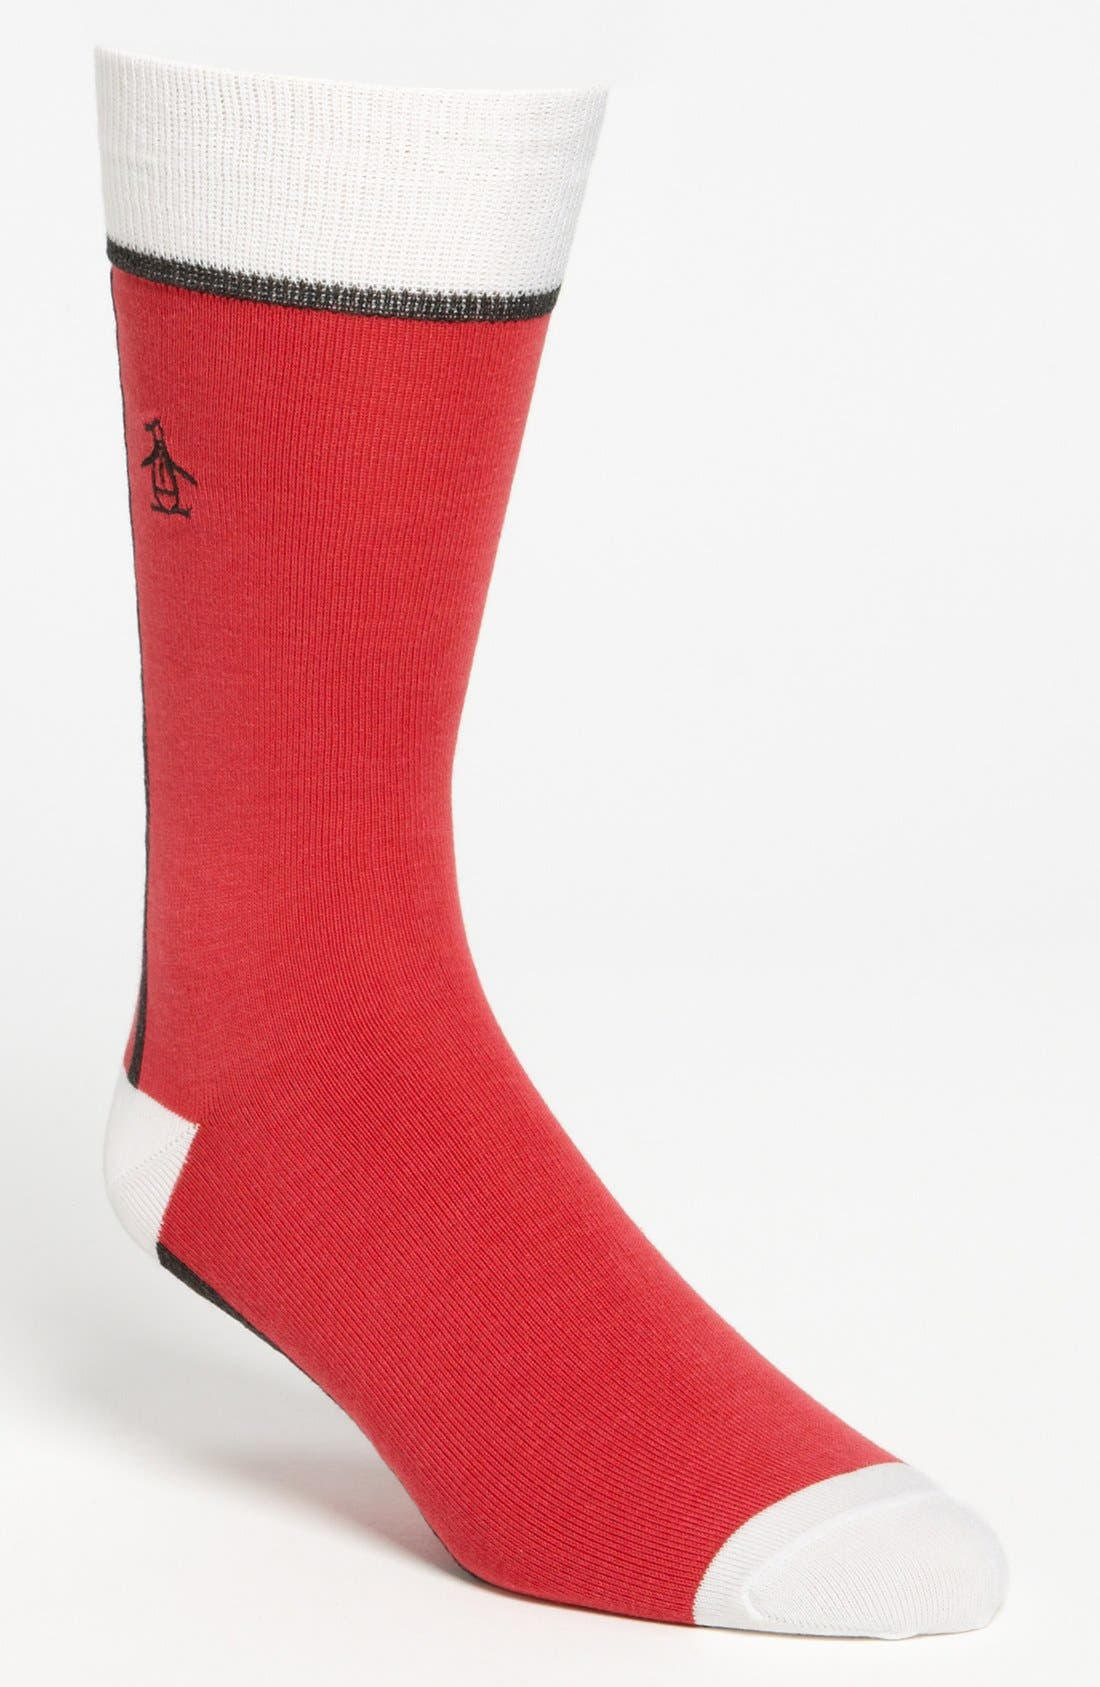 Alternate Image 1 Selected - Original Penguin Socks